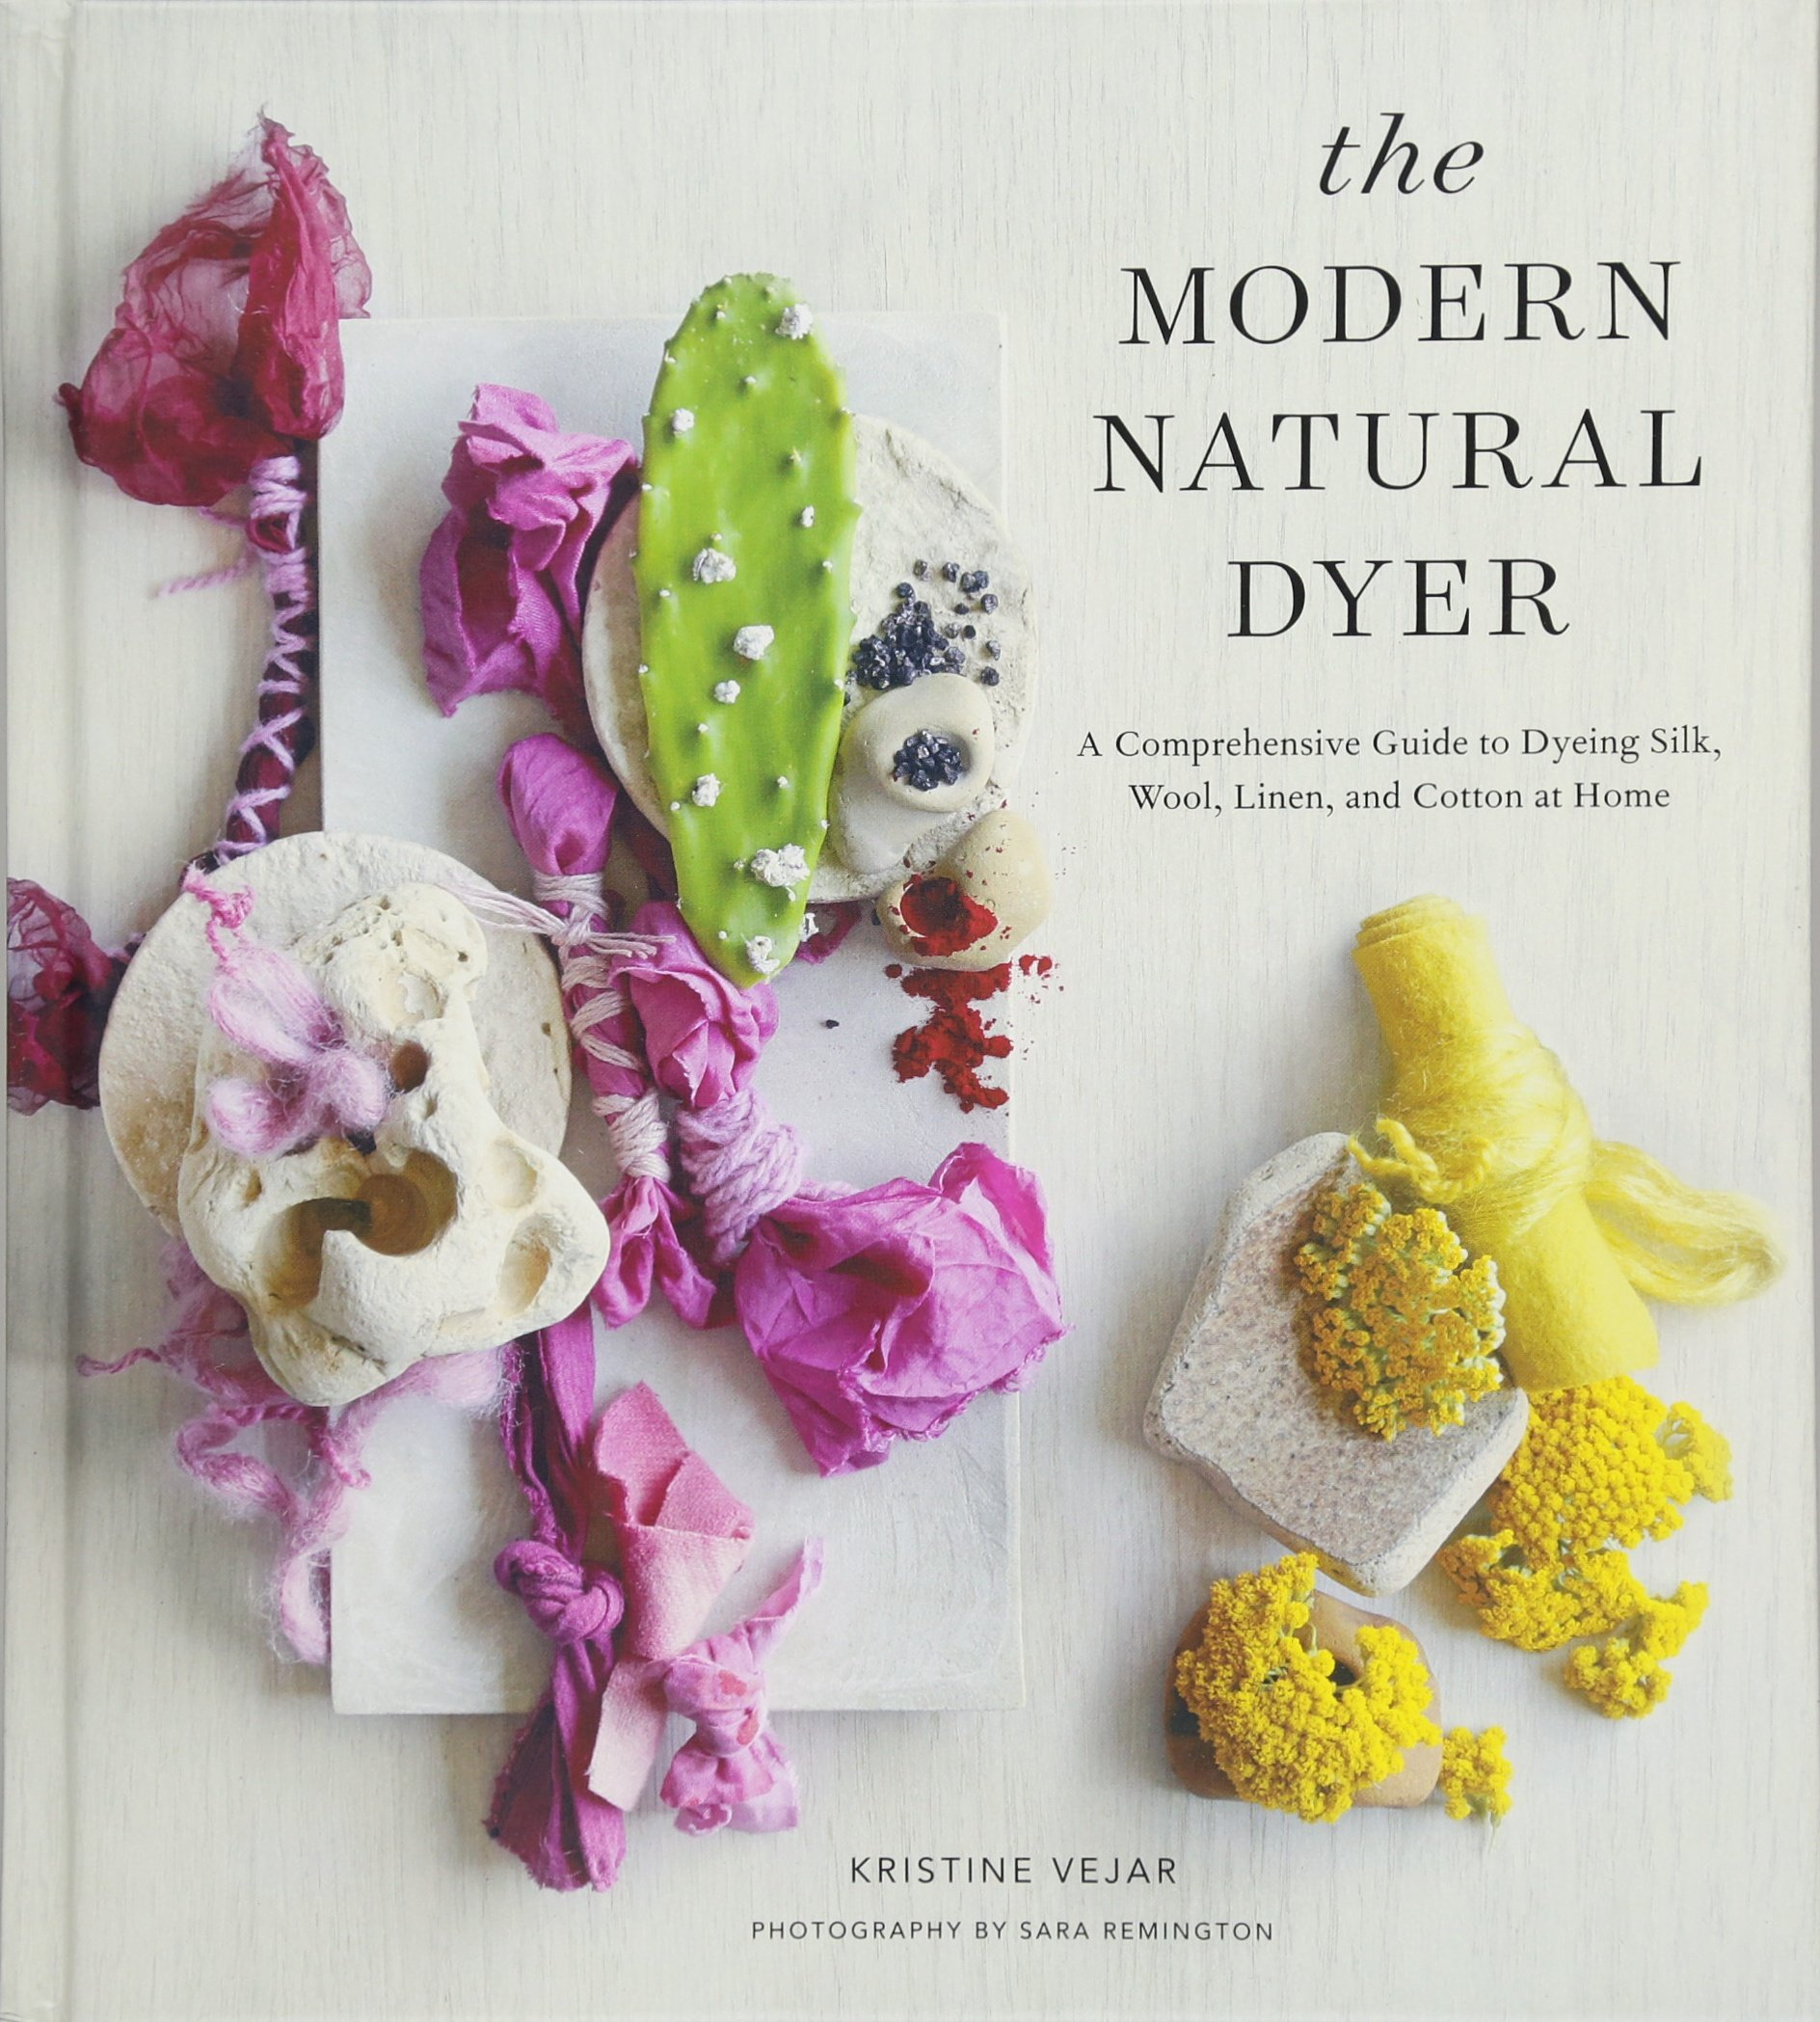 The Modern Natural Dyer: A Comprehensive Guide to Dyeing Silk, Wool, Linen, and Cotton at Home Hardcover – 20 Oct 2015 Kristine Vejar 1617691755 Handicrafts Arts & Crafts